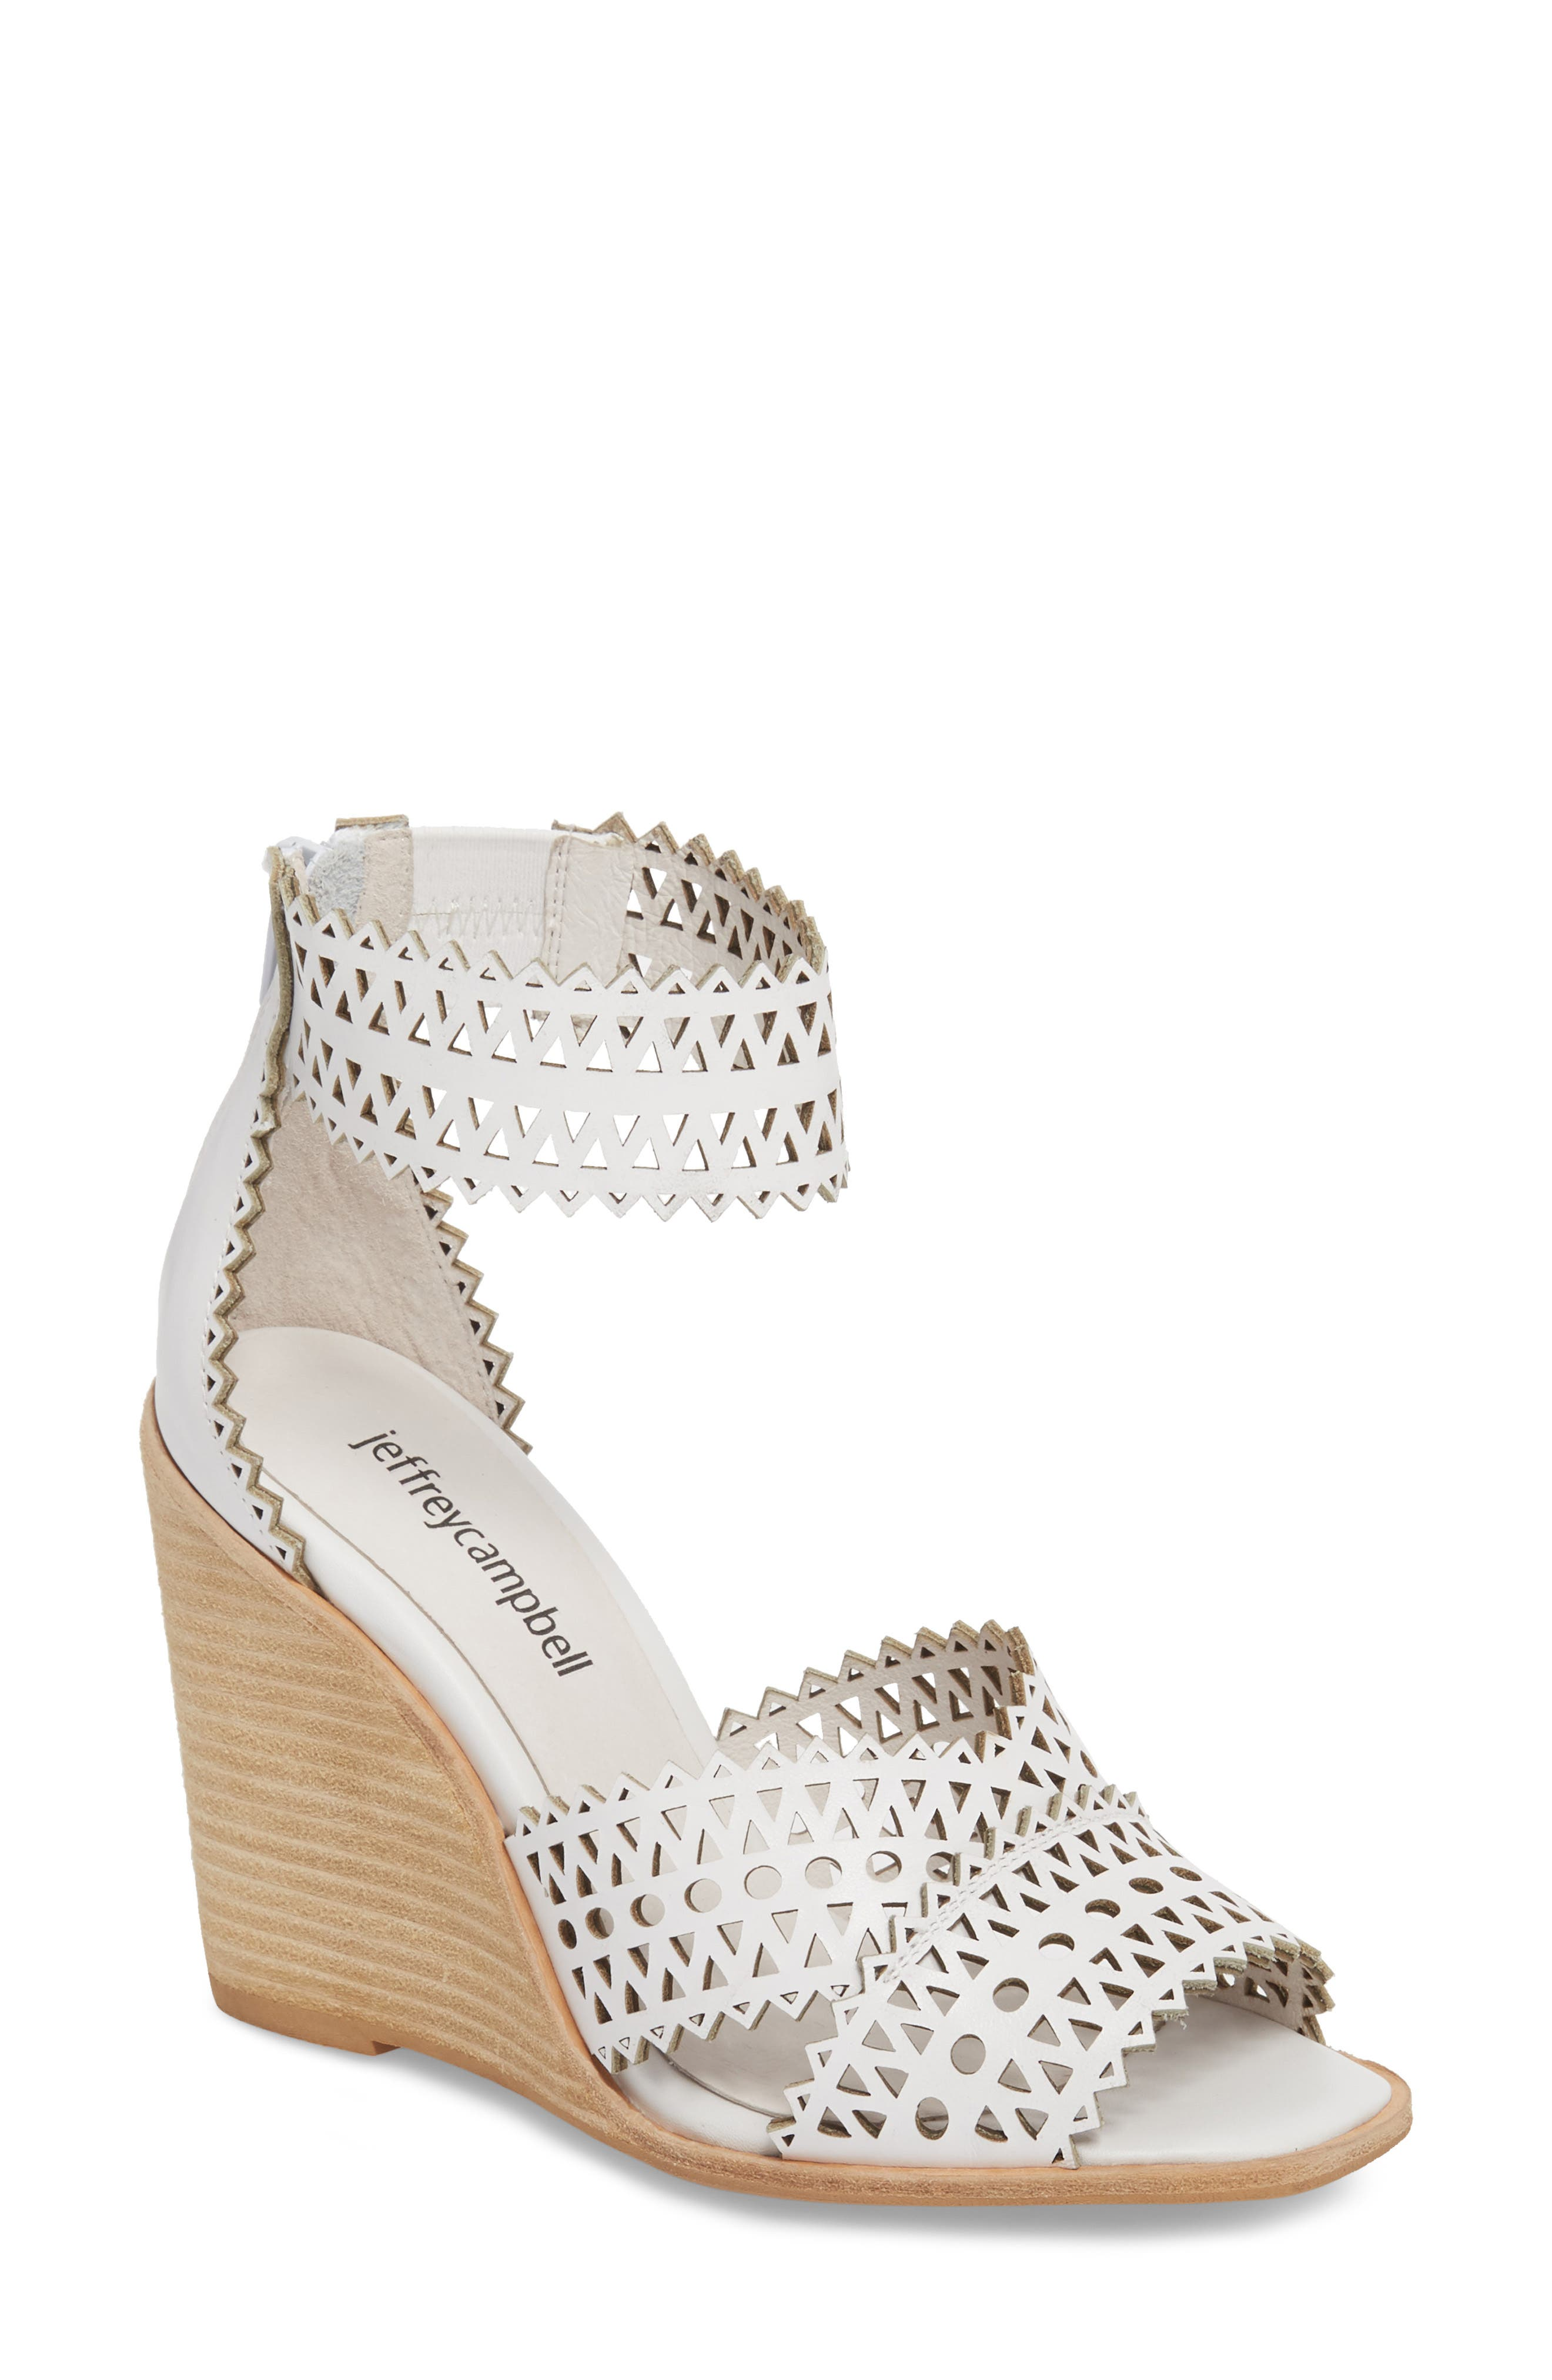 Besante Perforated Wedge Sandal,                             Main thumbnail 1, color,                             White